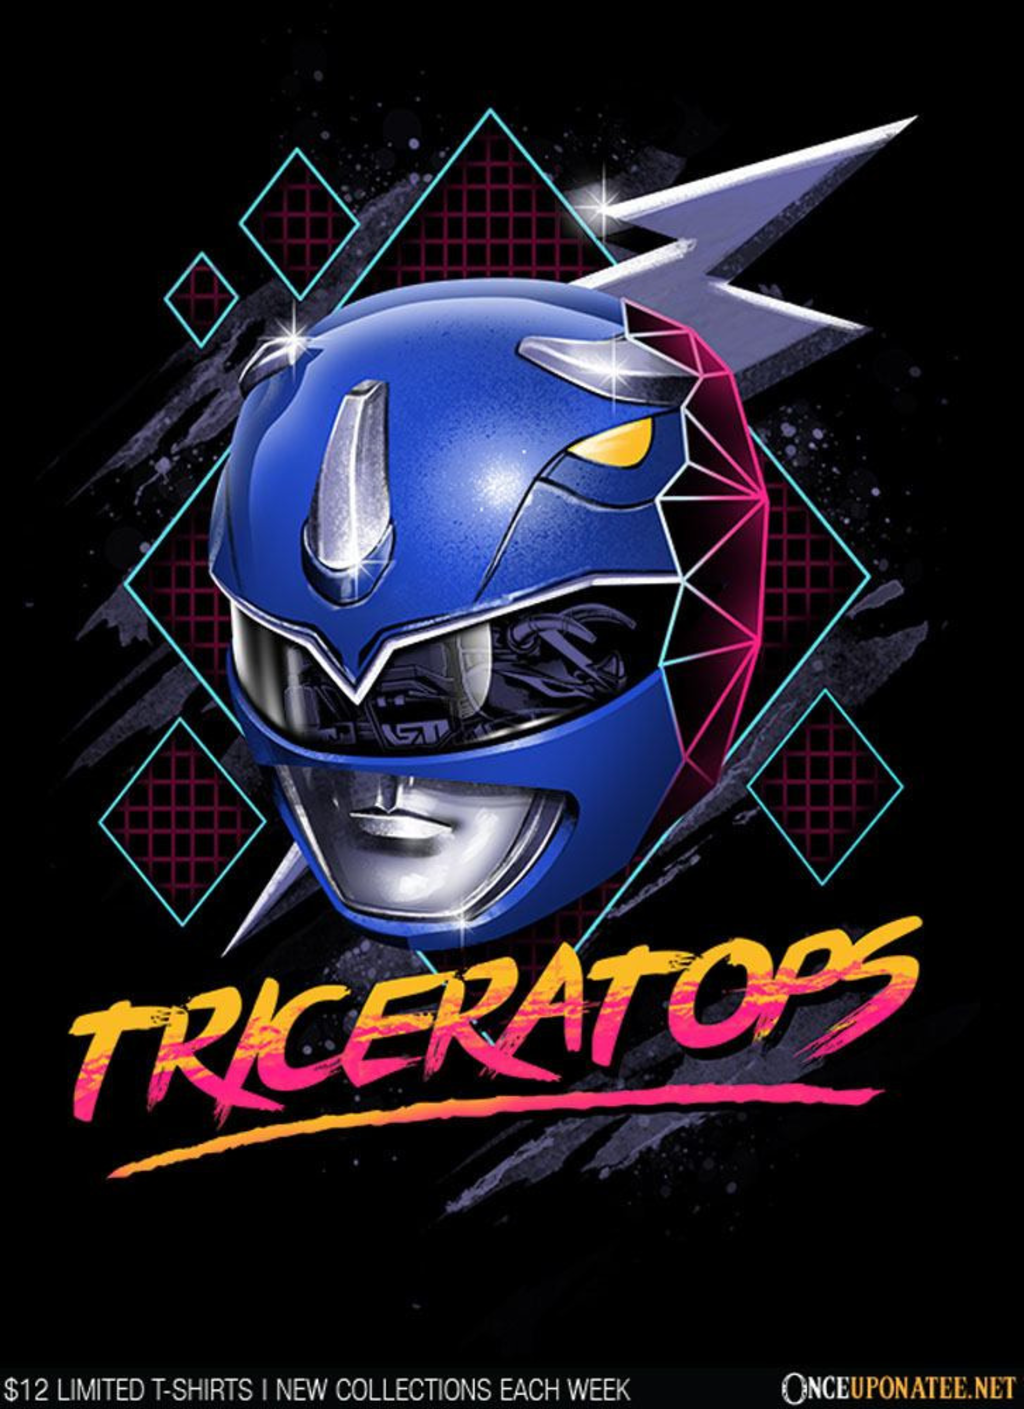 Once Upon a Tee: Epic Triceratops